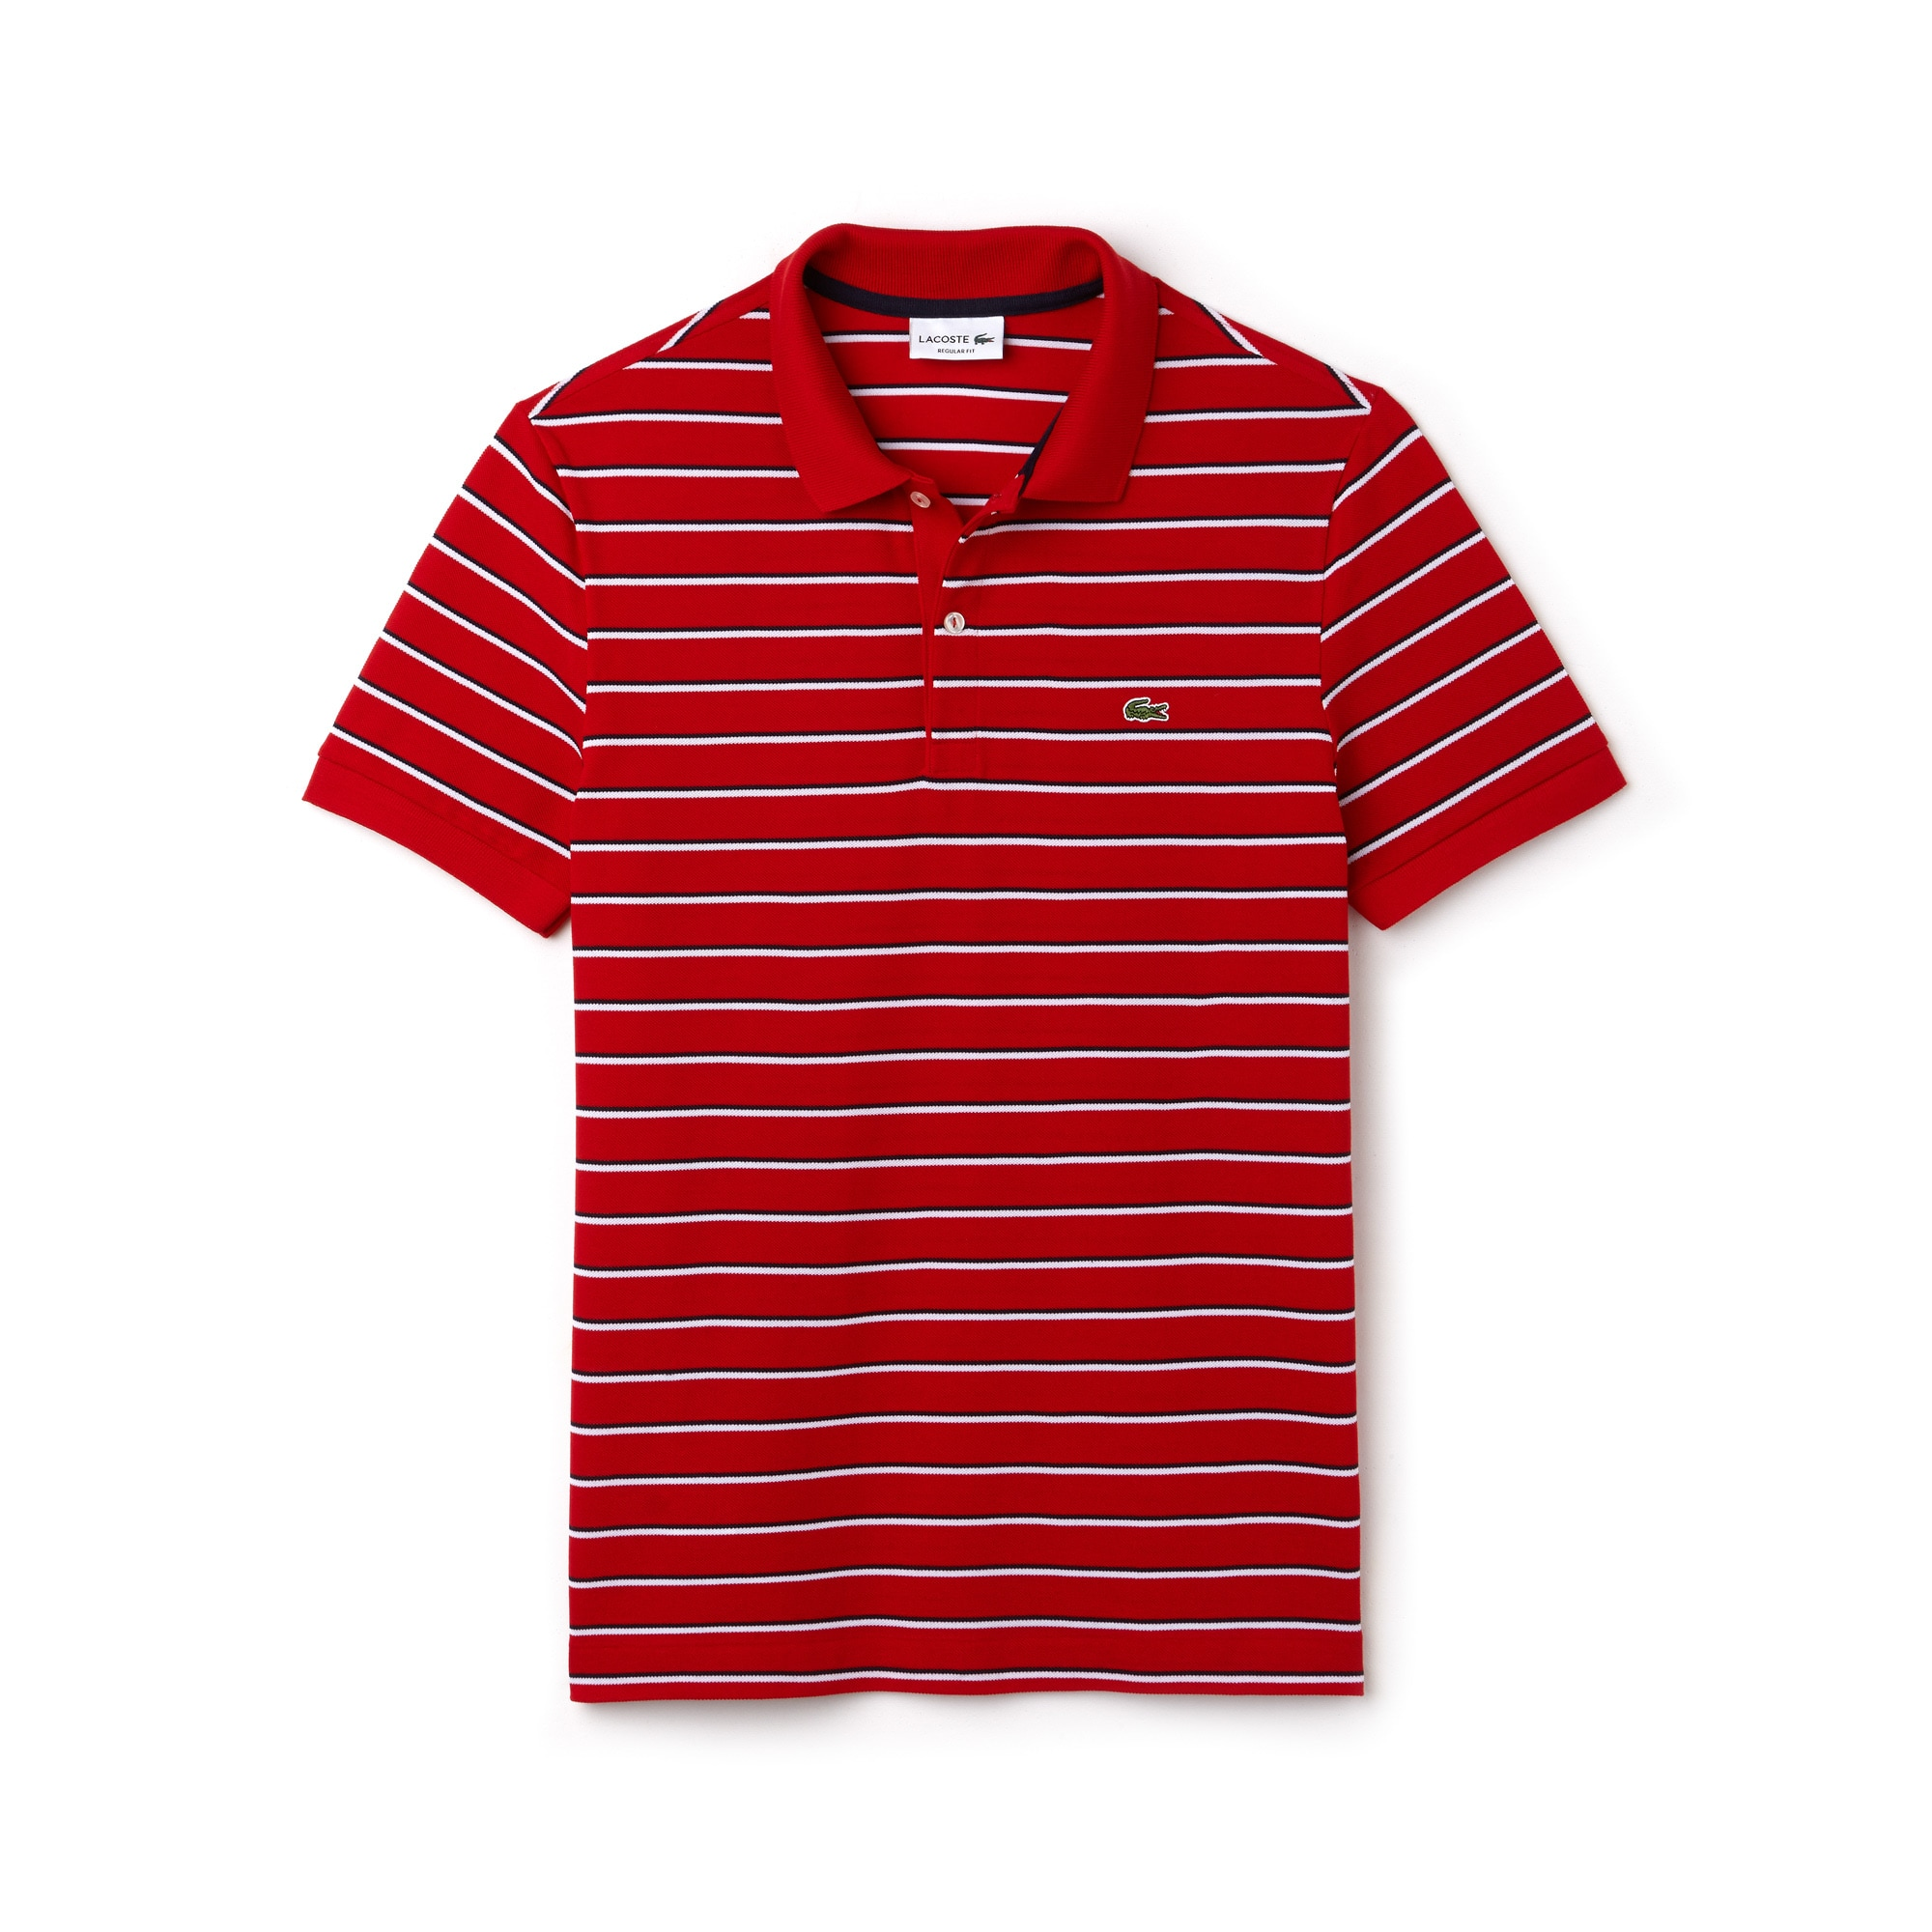 Men's Lacoste Regular Fit Striped Cotton Piqué Polo Shirt